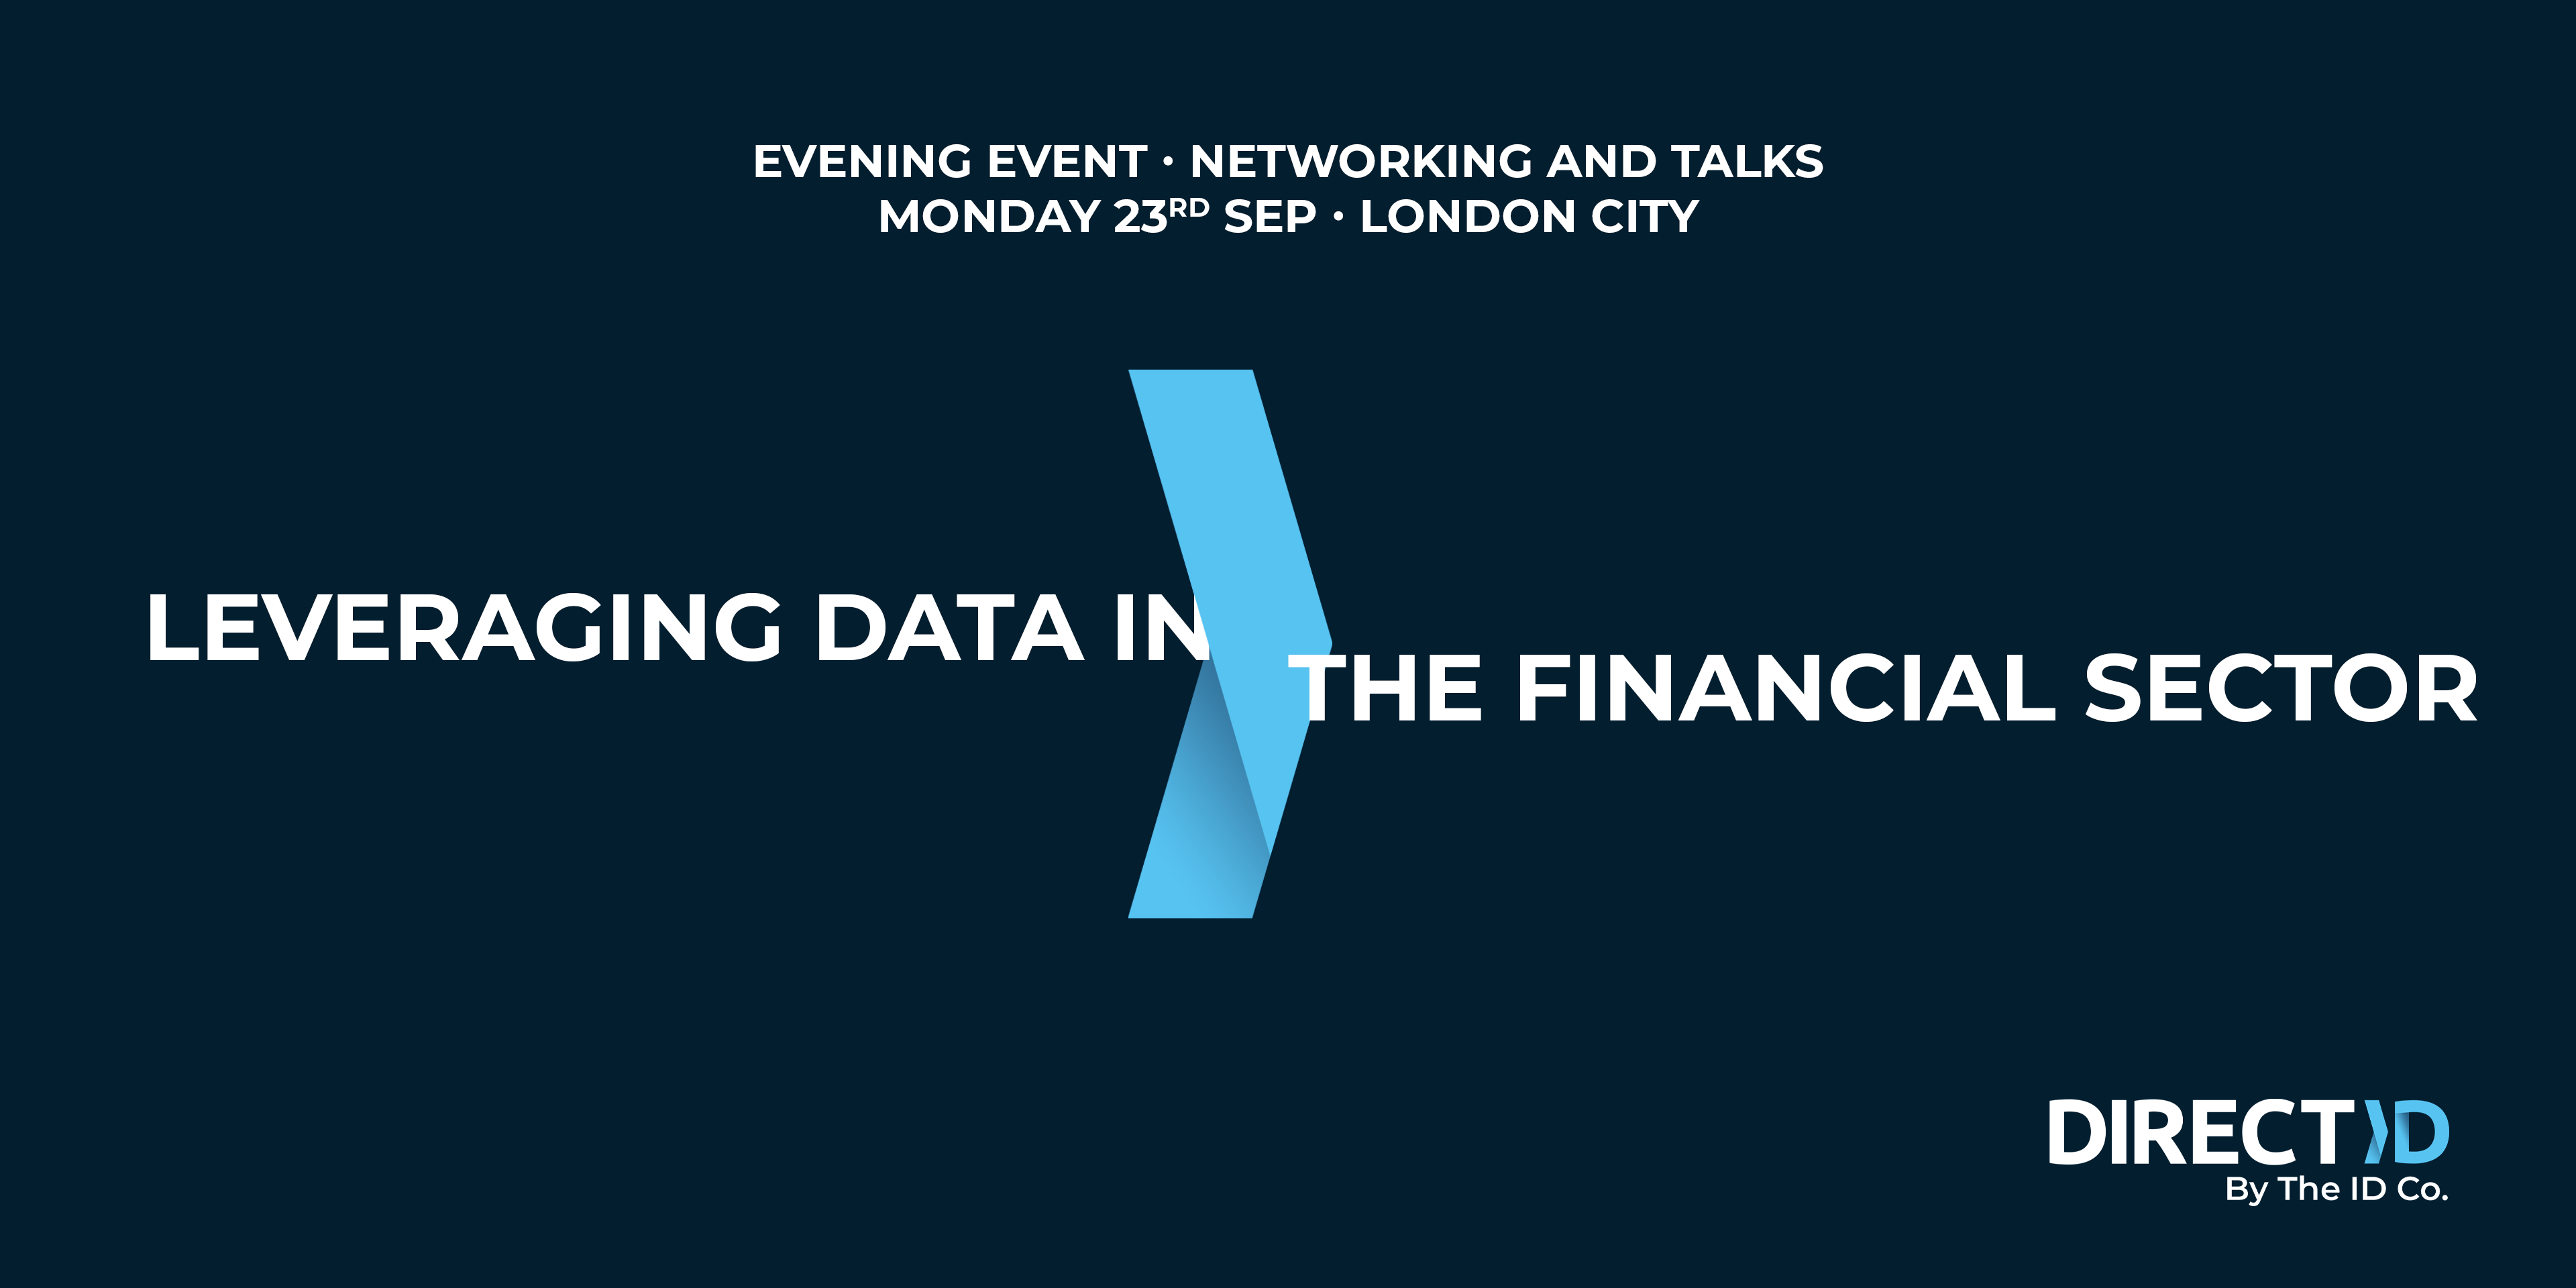 Leveraging Data in The Financial Sector - Networking and Talks